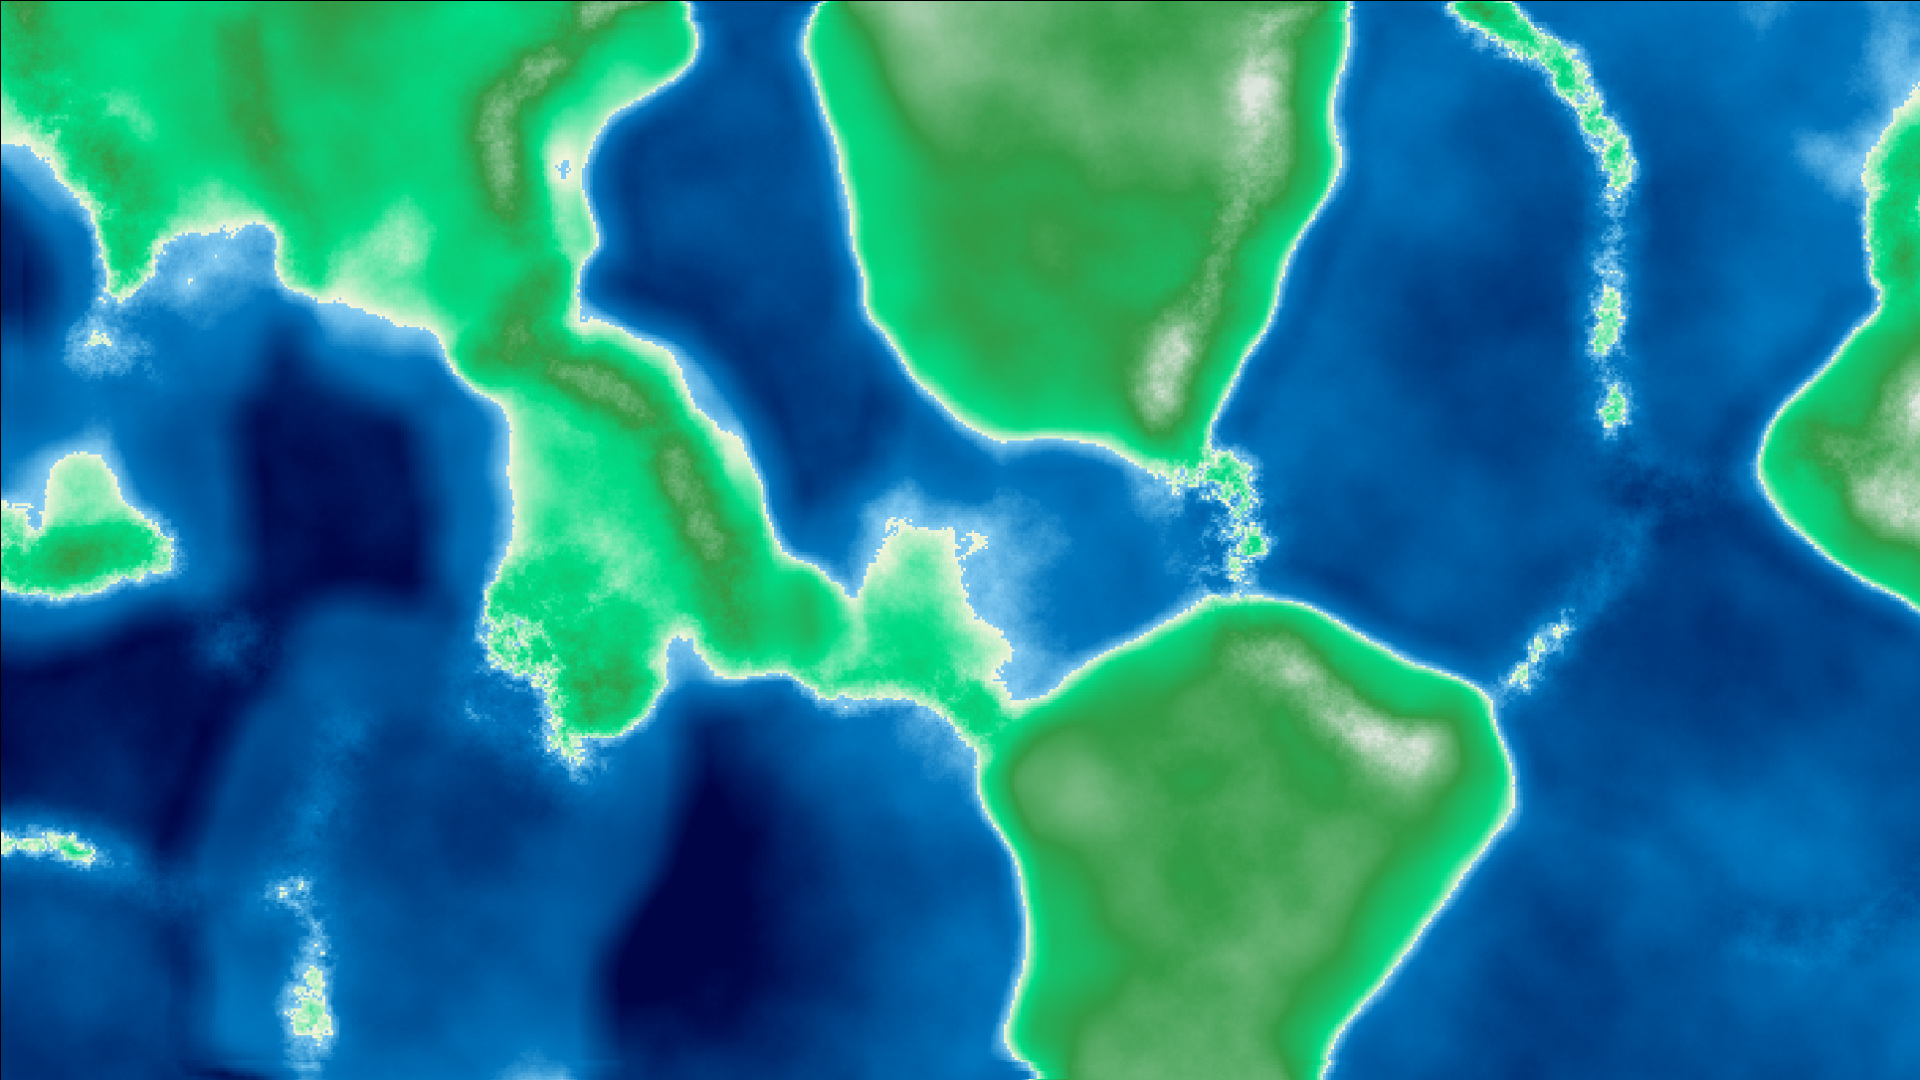 Terrain Generation 4: Plates, Continents, Coasts